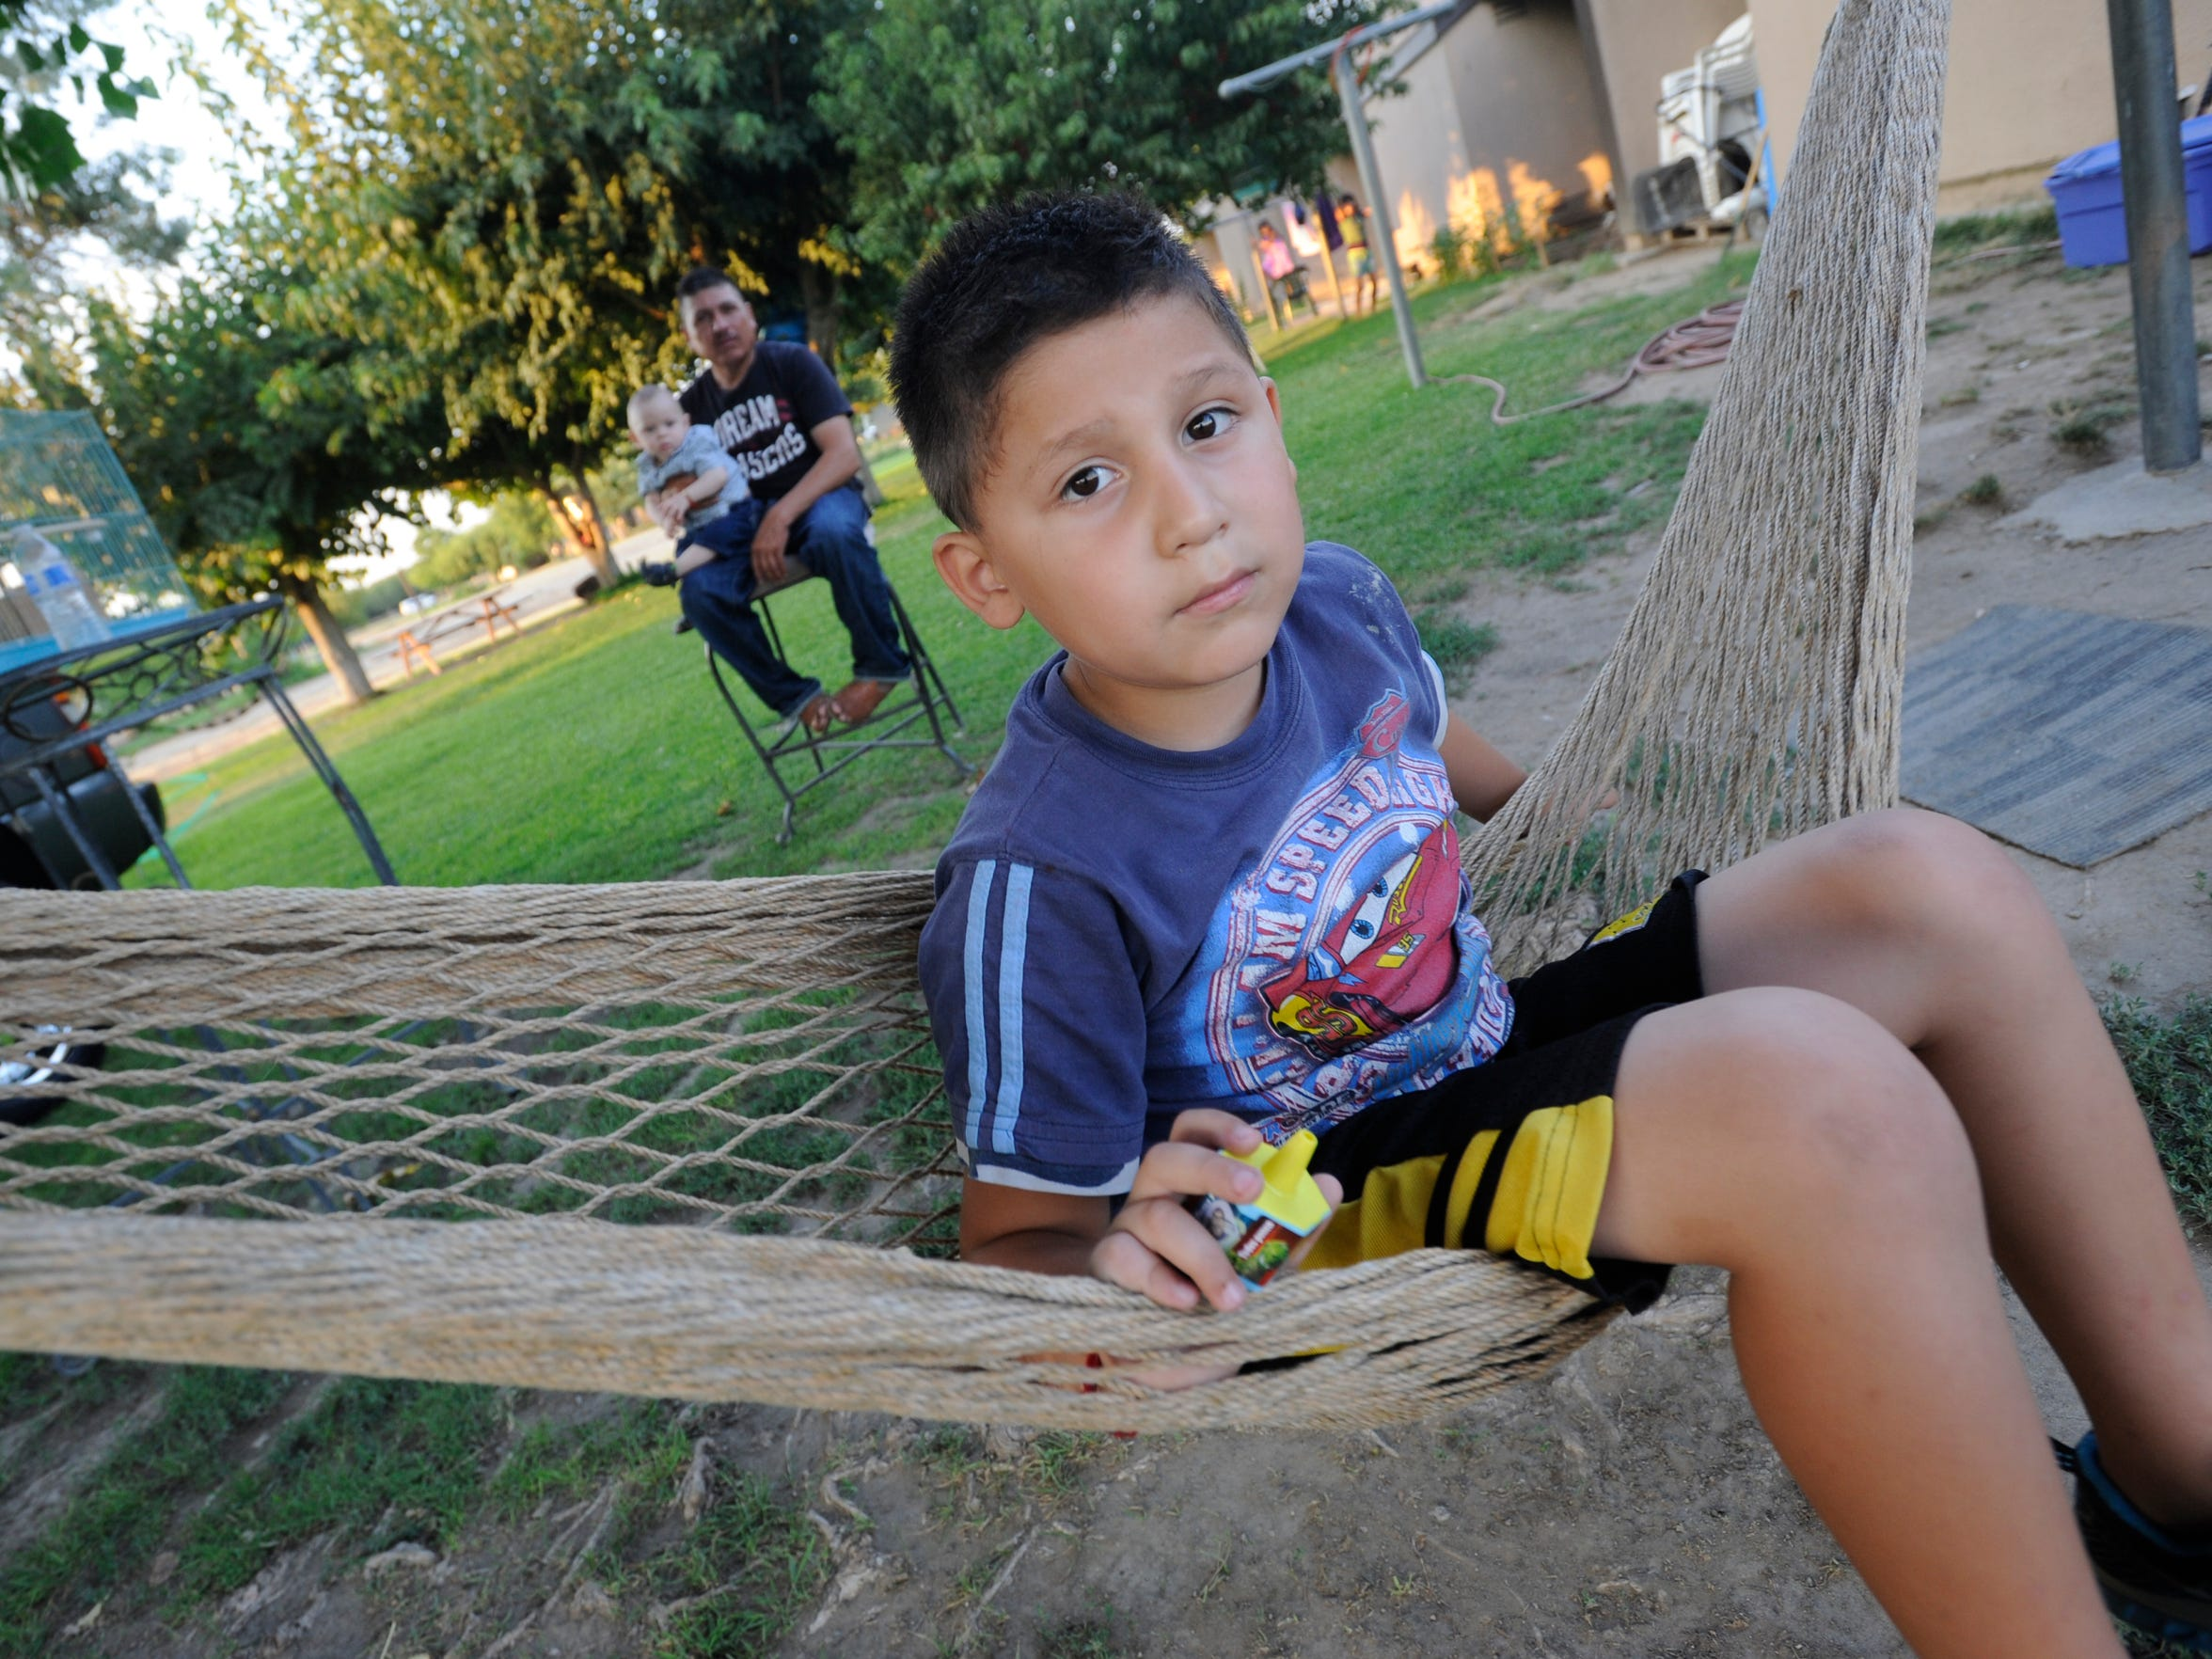 Oscar Sanchez, 5, swings on a hamoc as his dad Efrain Sanchez and his 8-month-old brother Efrain Edwin Sanchez relax outside their Linnell Farm Labor Center home on Tuesday.